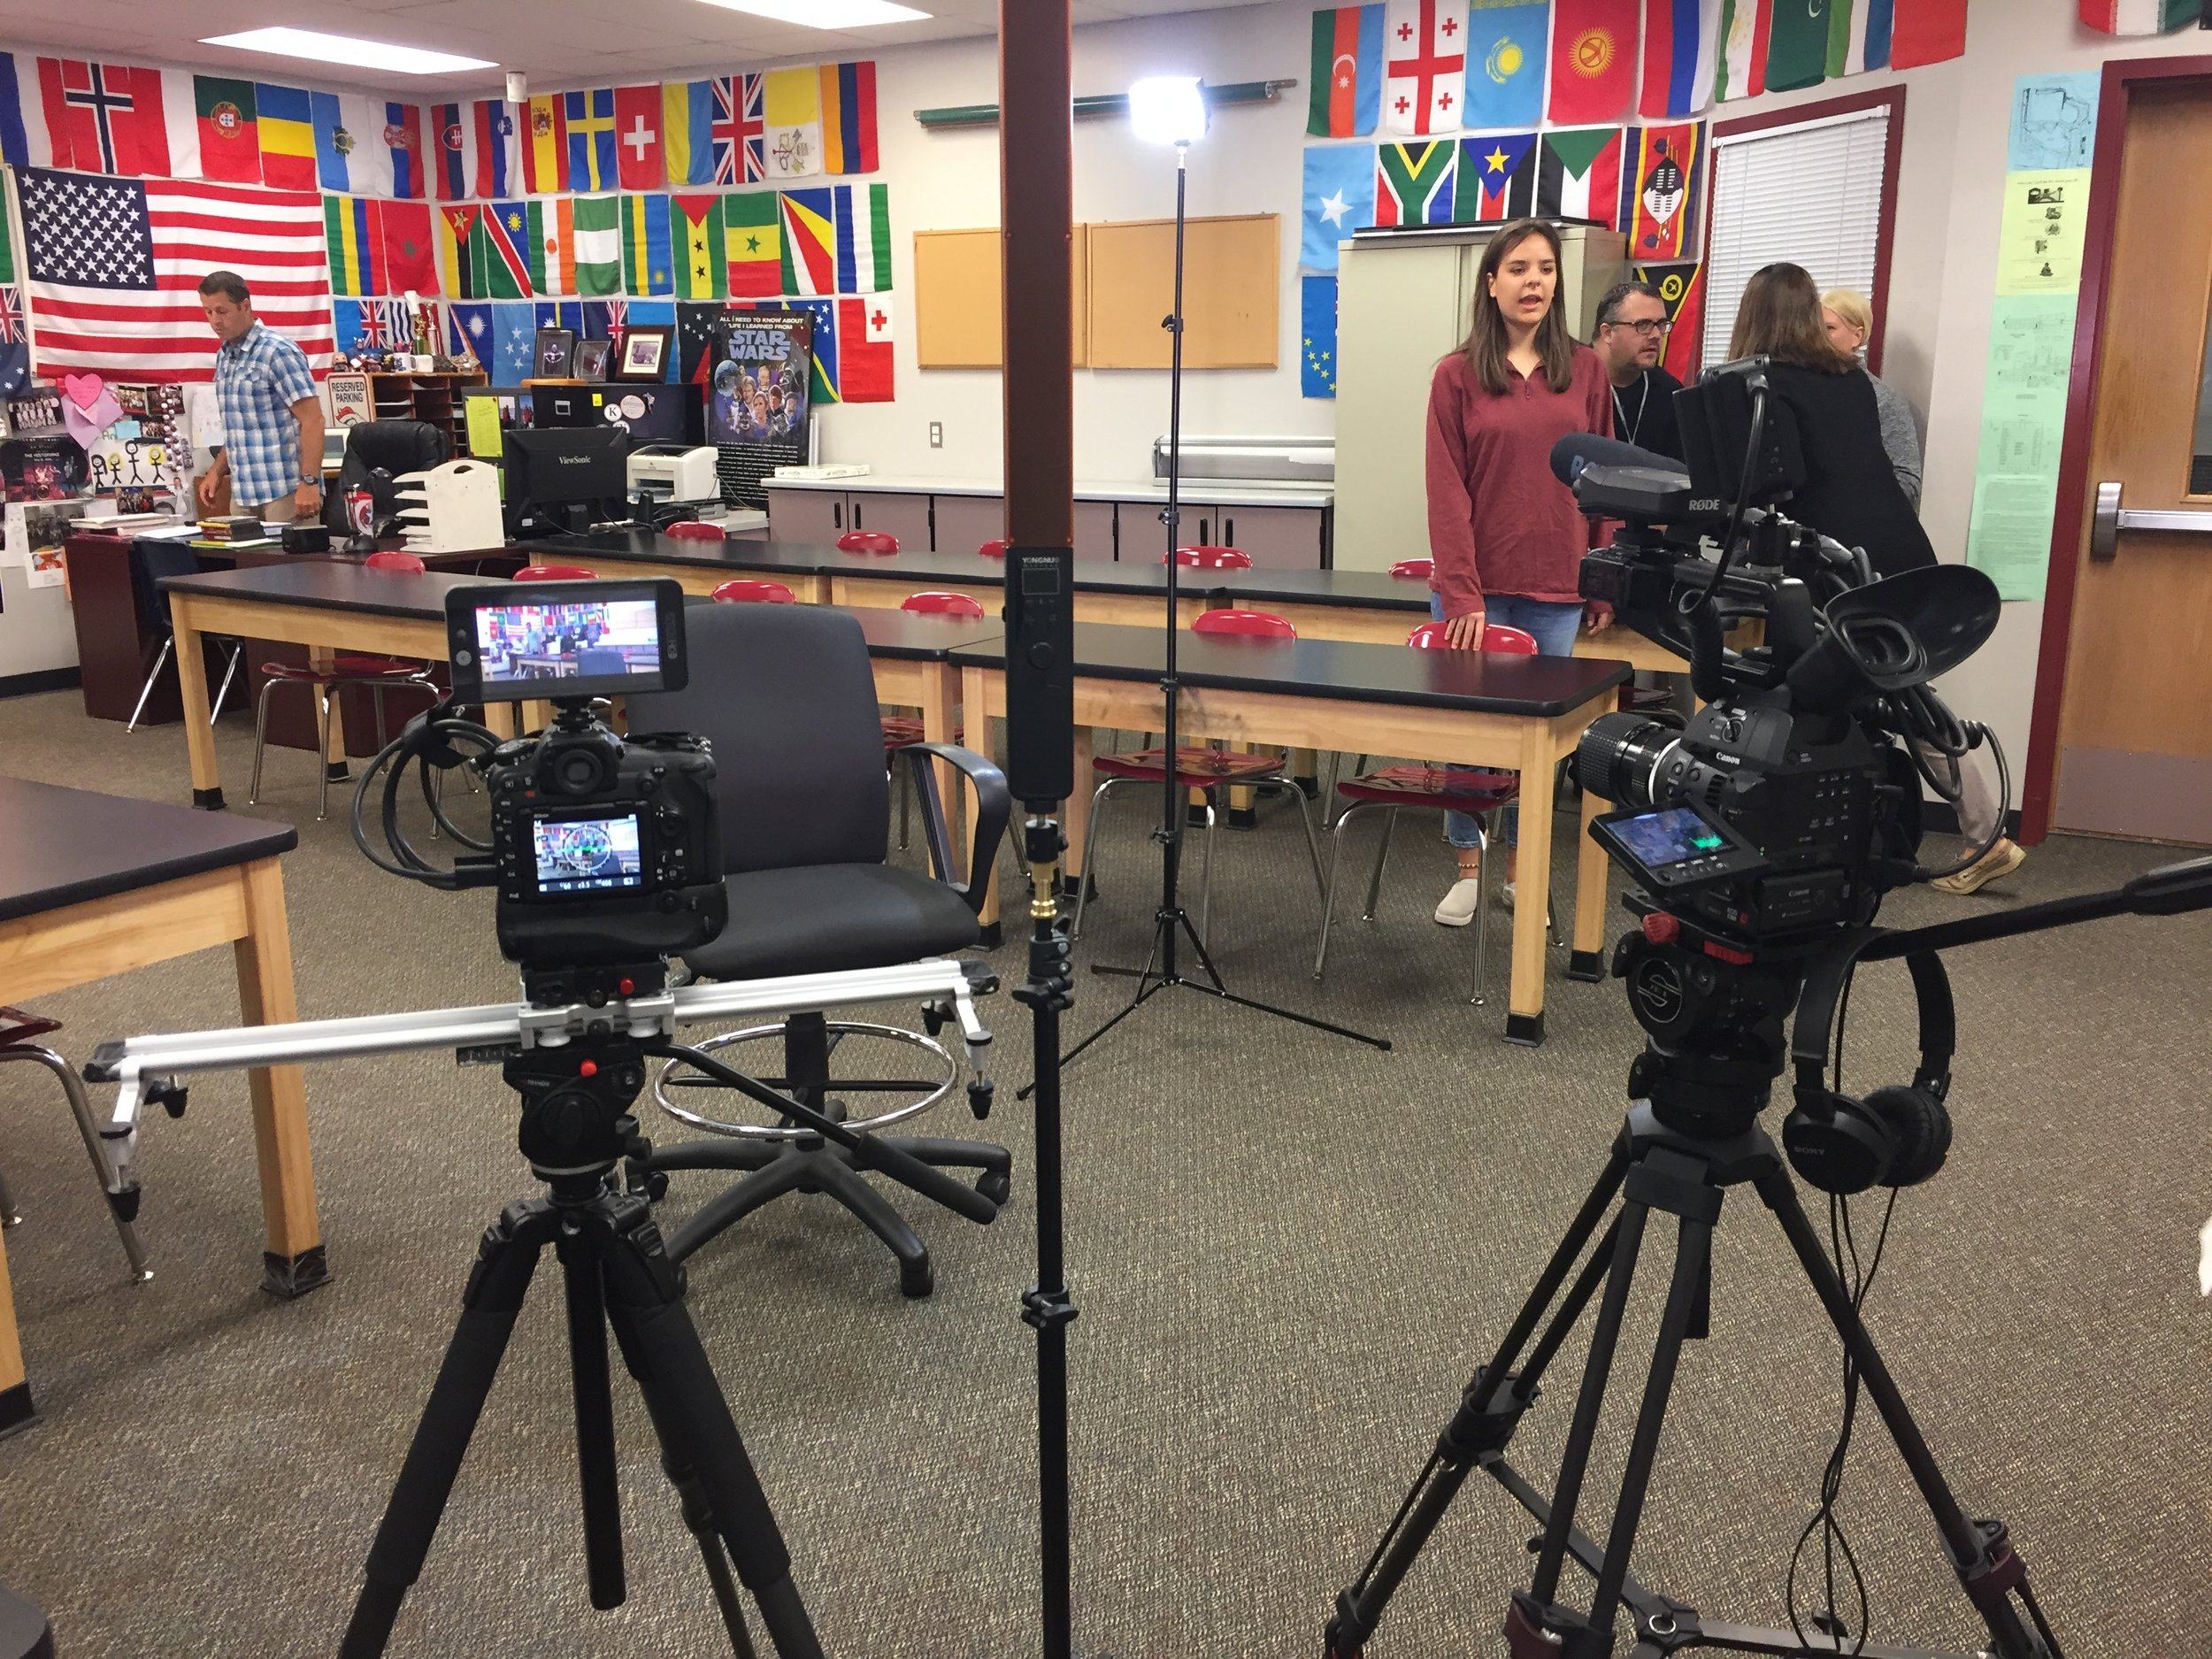 Setting up for the first interview of Day 2. We were to interview a High School teacher (back left). His class was sitting just off camera (left of the screen) while he conducted the interview.